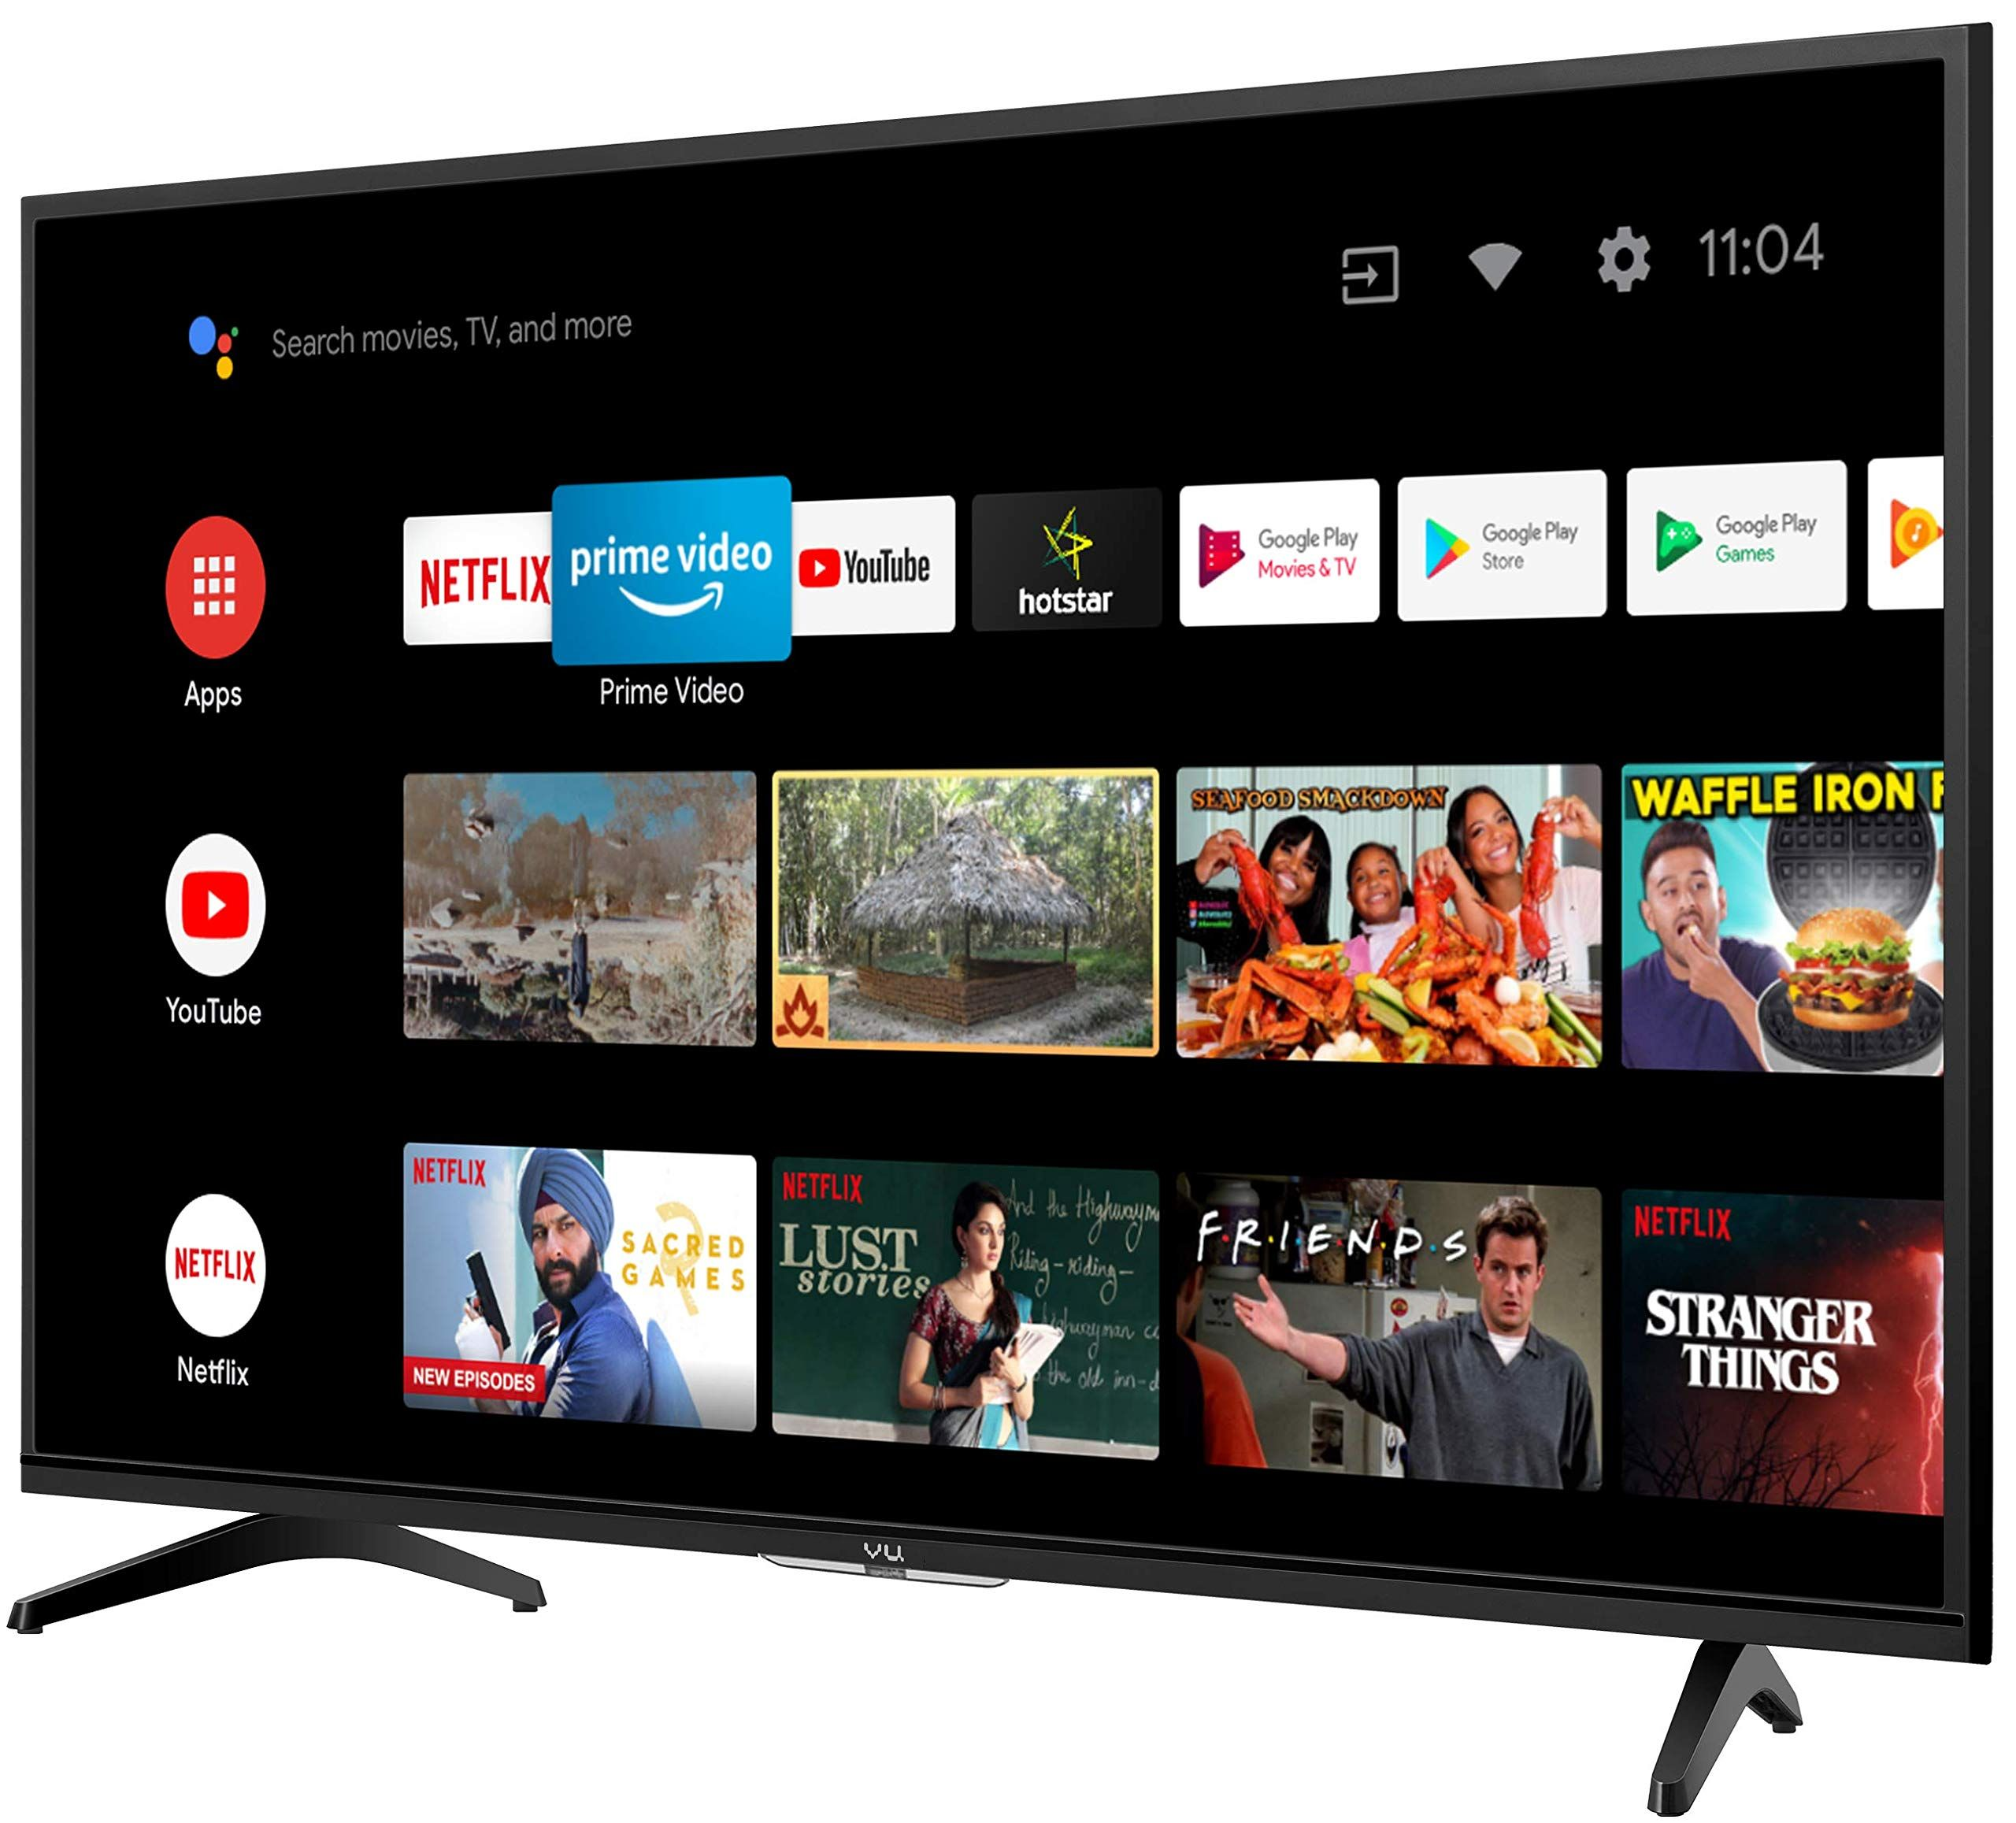 a07849ad7146c82a1834ca10fc837ffc - How To Get Google Play Store On Lg Tv